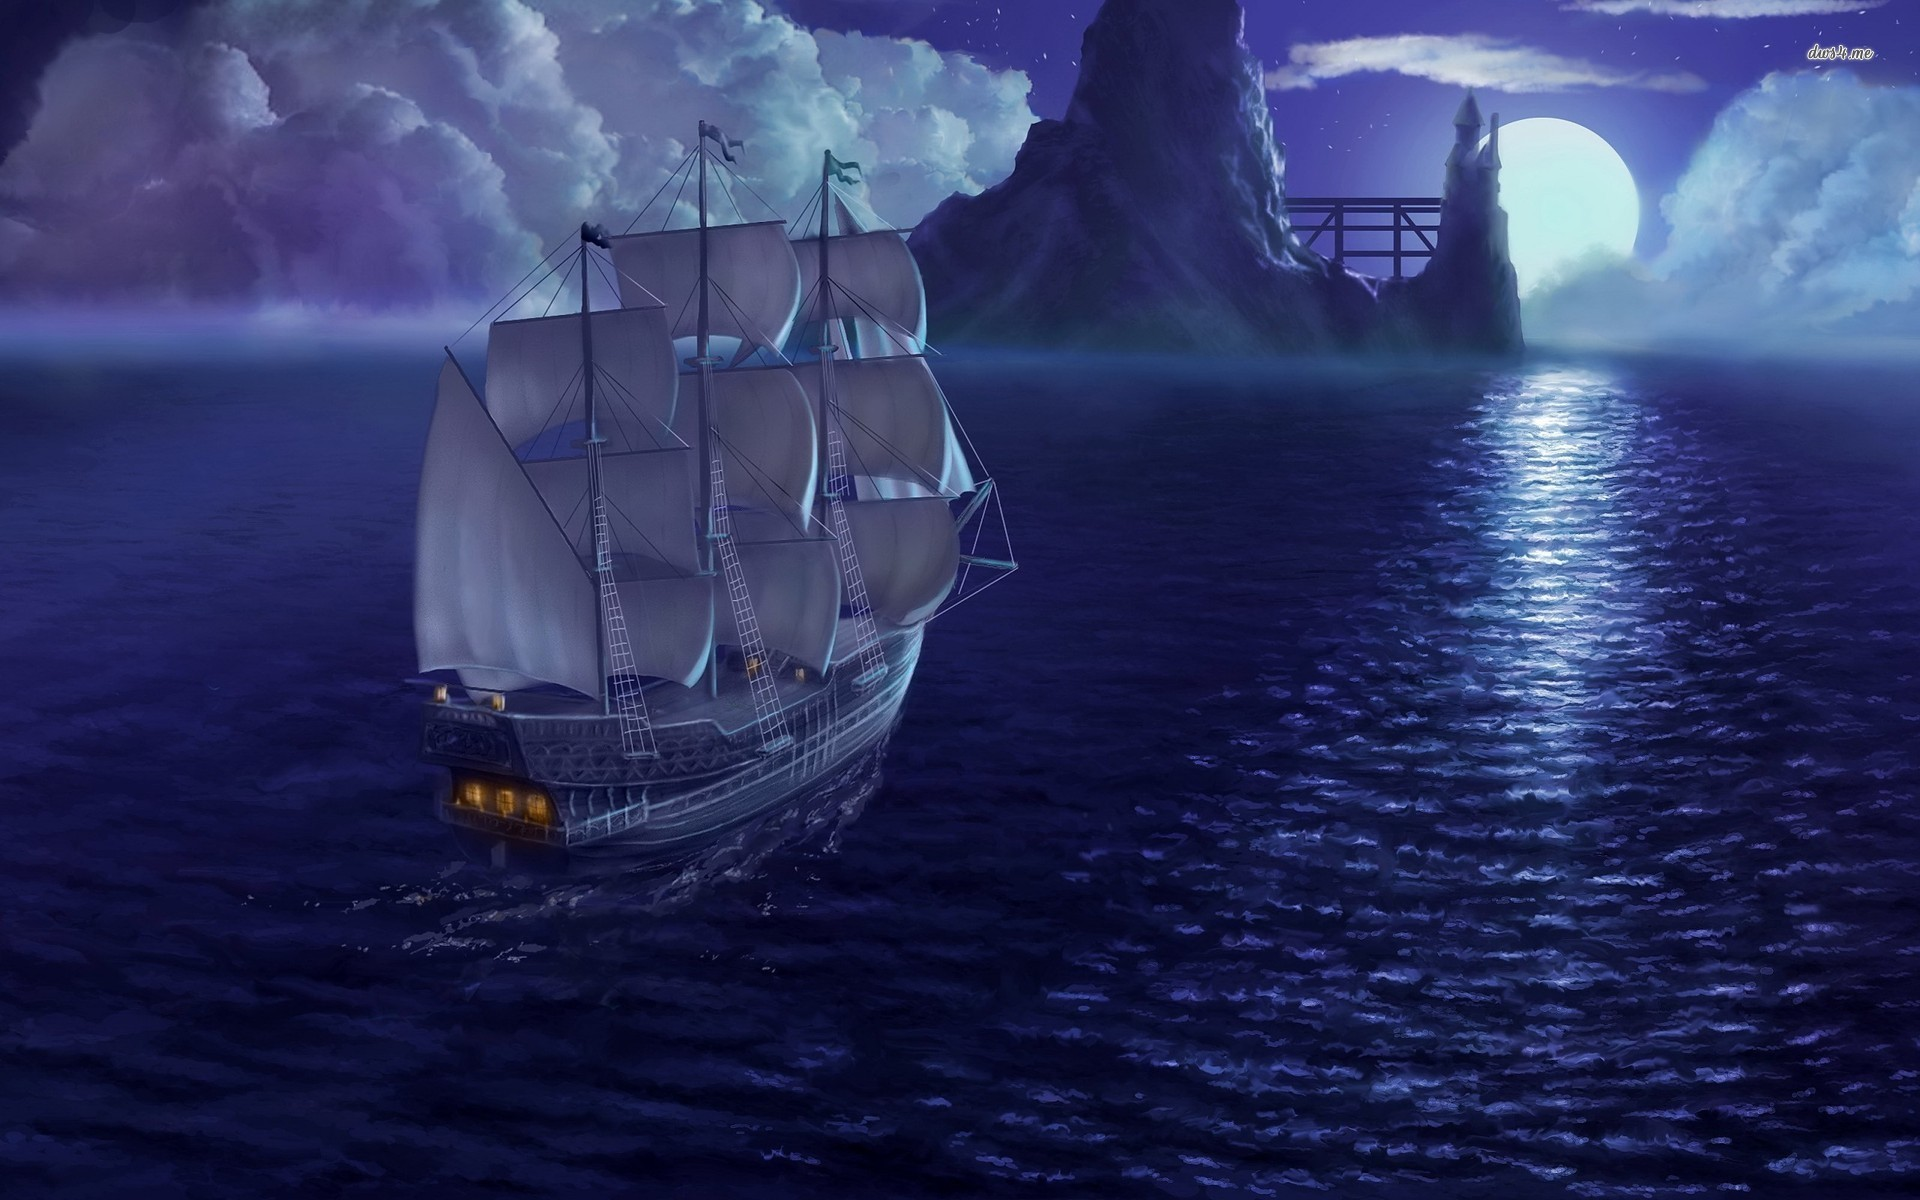 1920x1200 sailing ship wallpaper 2560x1600 - photo #8